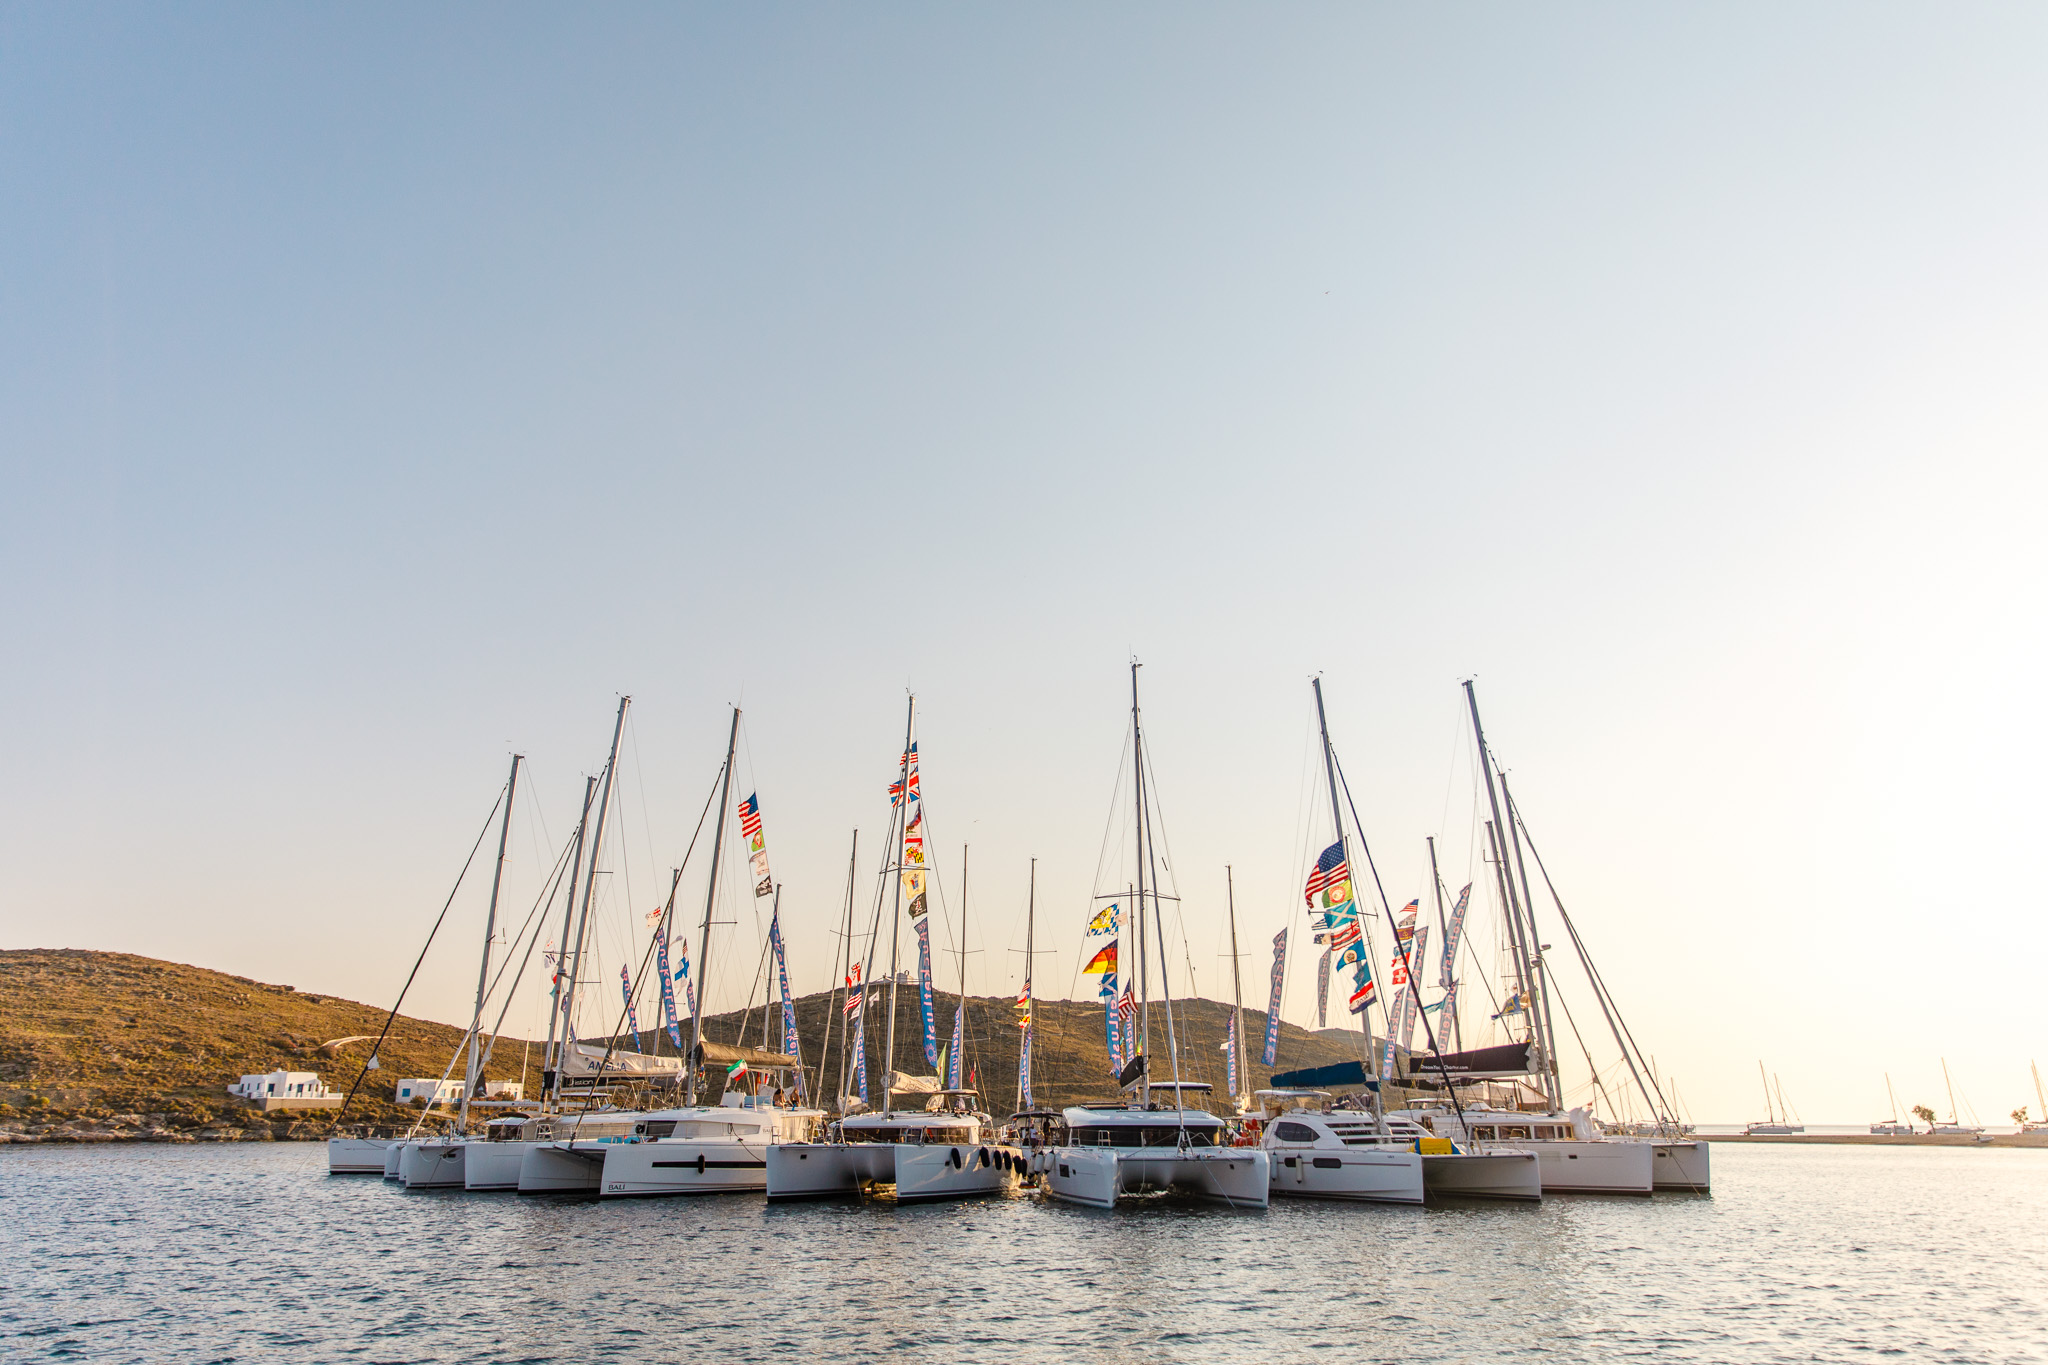 The sun sets over our circle raft - The Mykonos Route